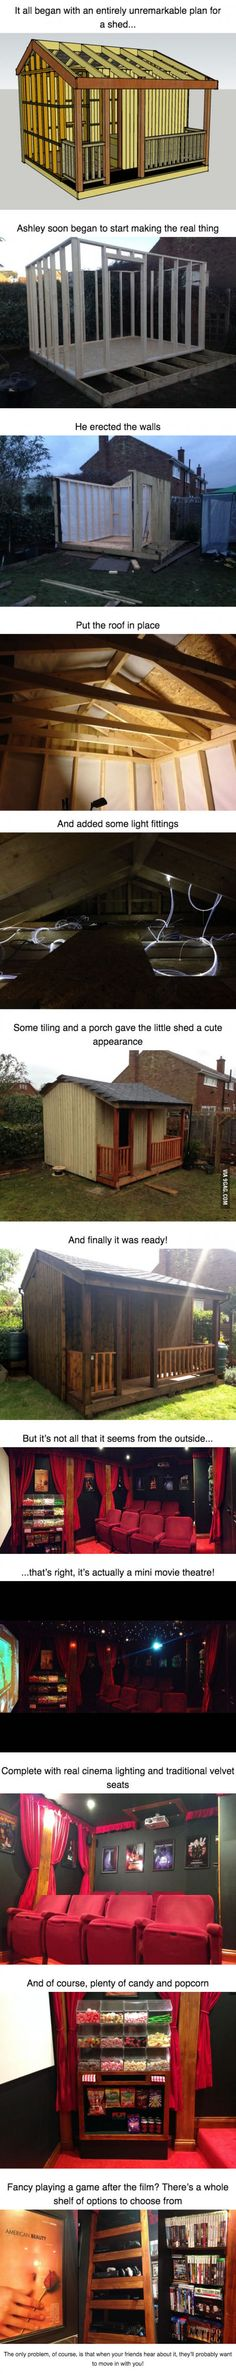 This looks like an ordinary shed, but nope, it's every movie maniac's dream comes true!